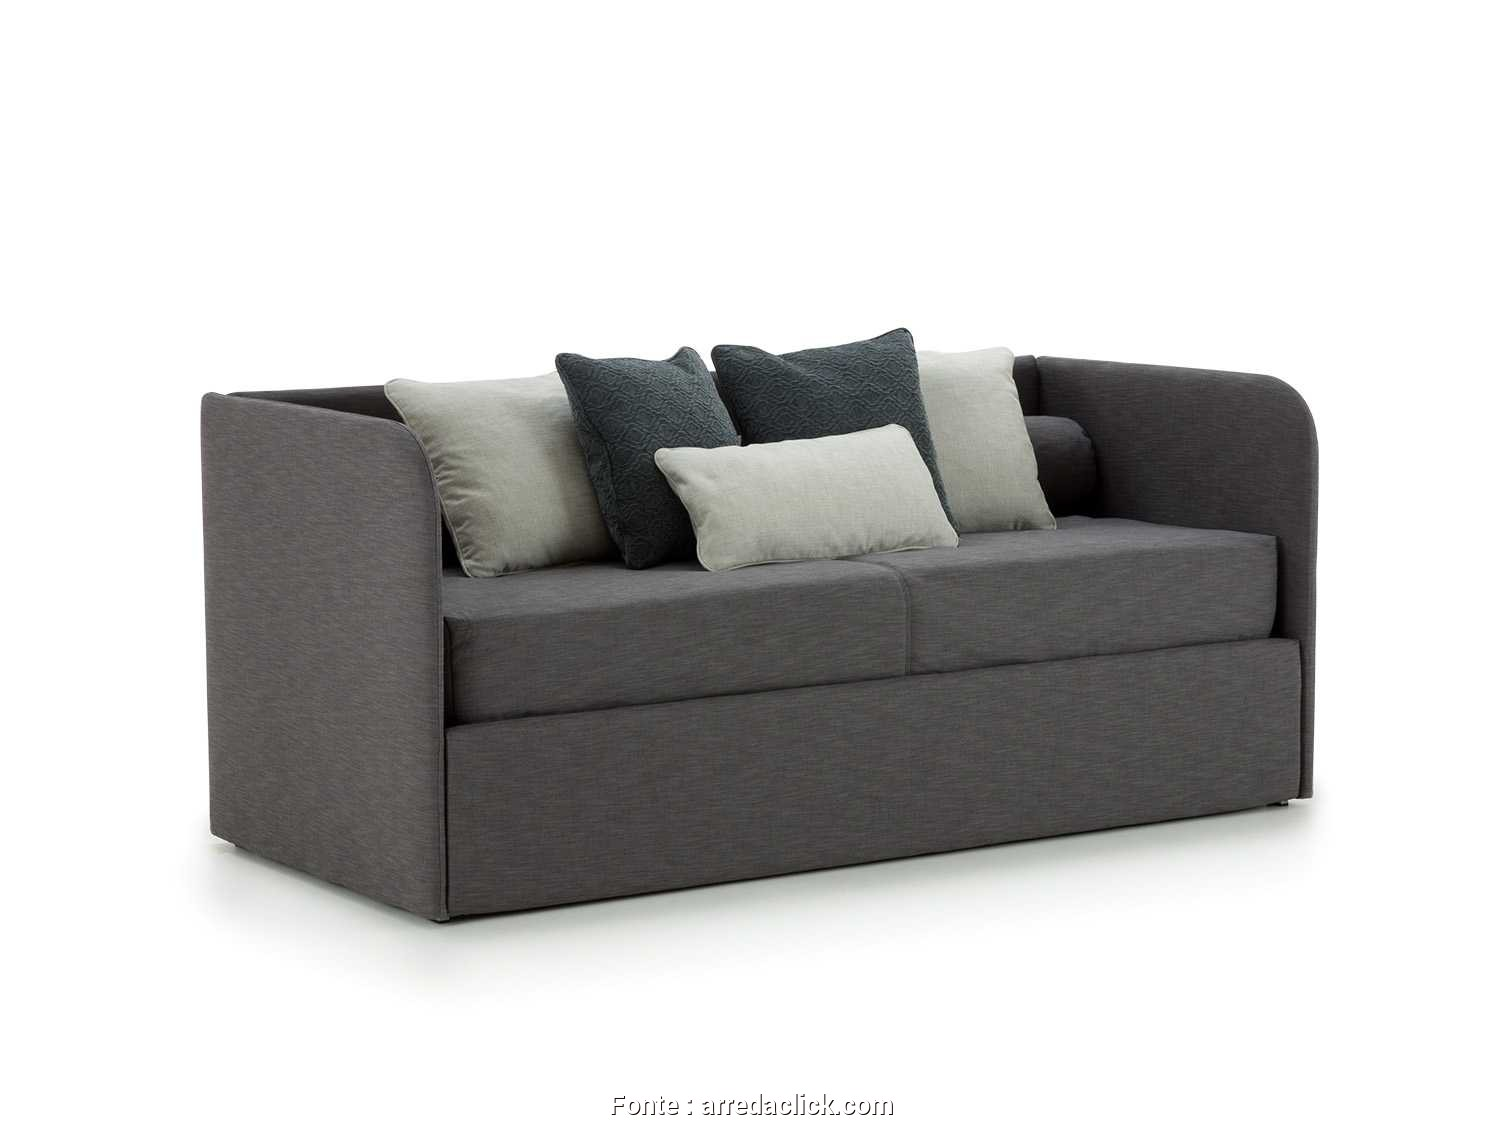 Divano Letto Singolo Outlet, Incredibile Birba Sofa Outlet